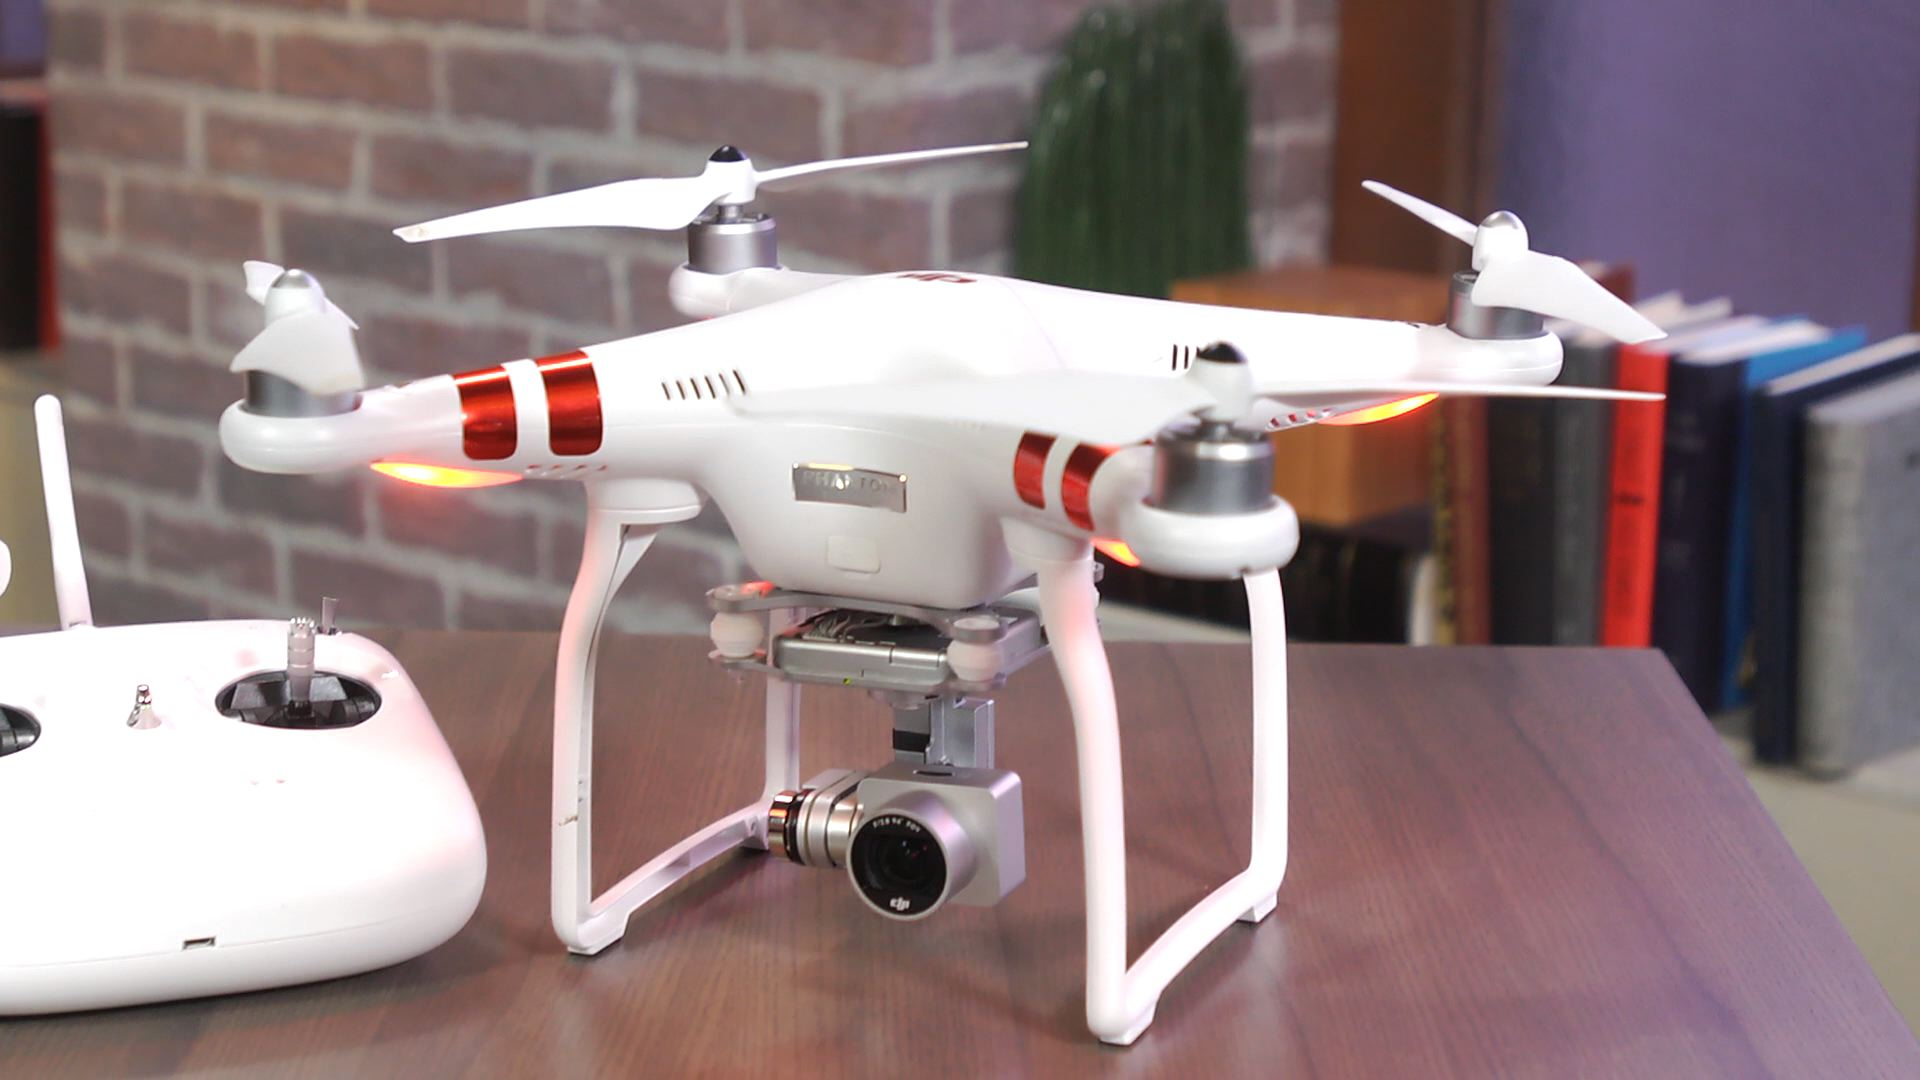 Video: DJI's Phantom 3 Standard might be entry-level but it's not basic